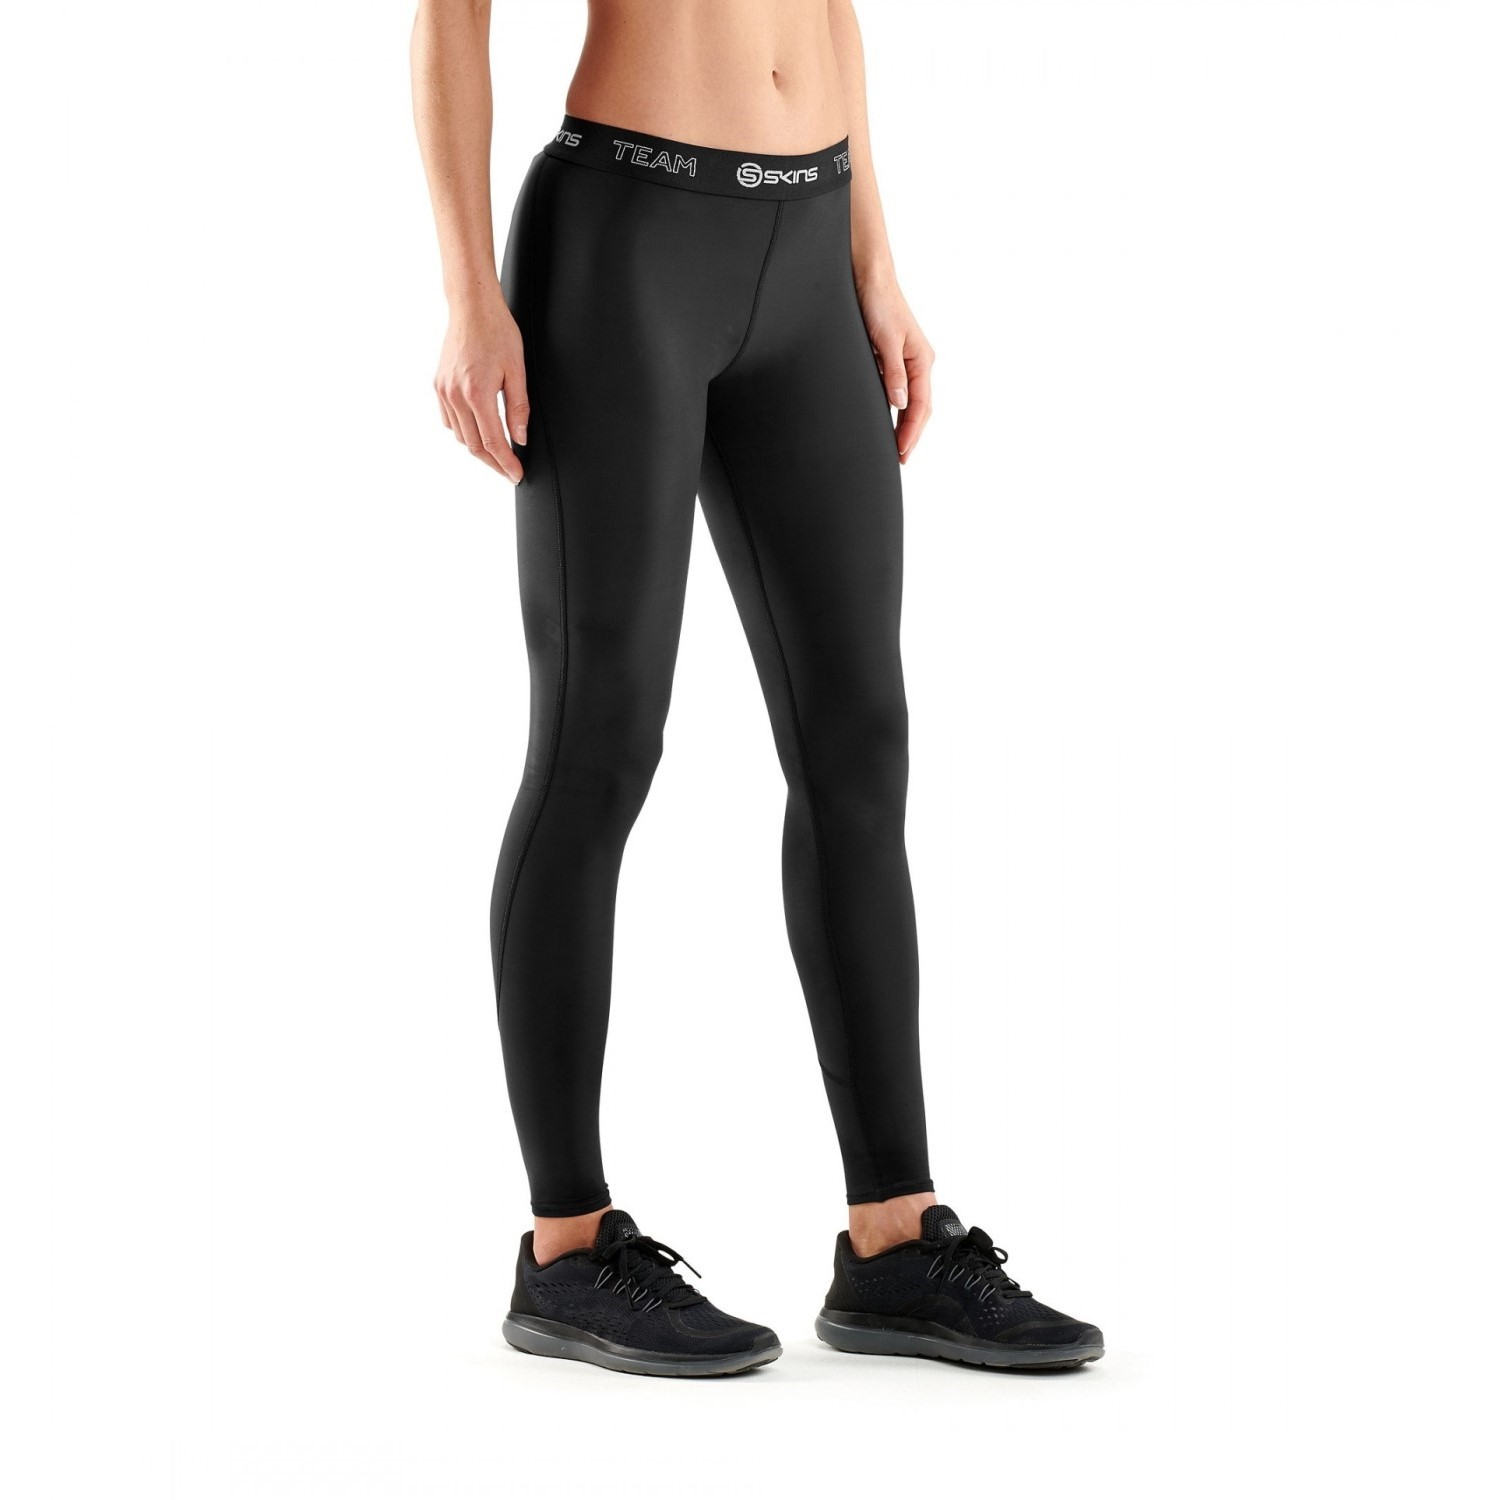 1213970f82 Skins DNAmic Team Womens Compression Long Tights - Black | Sportitude